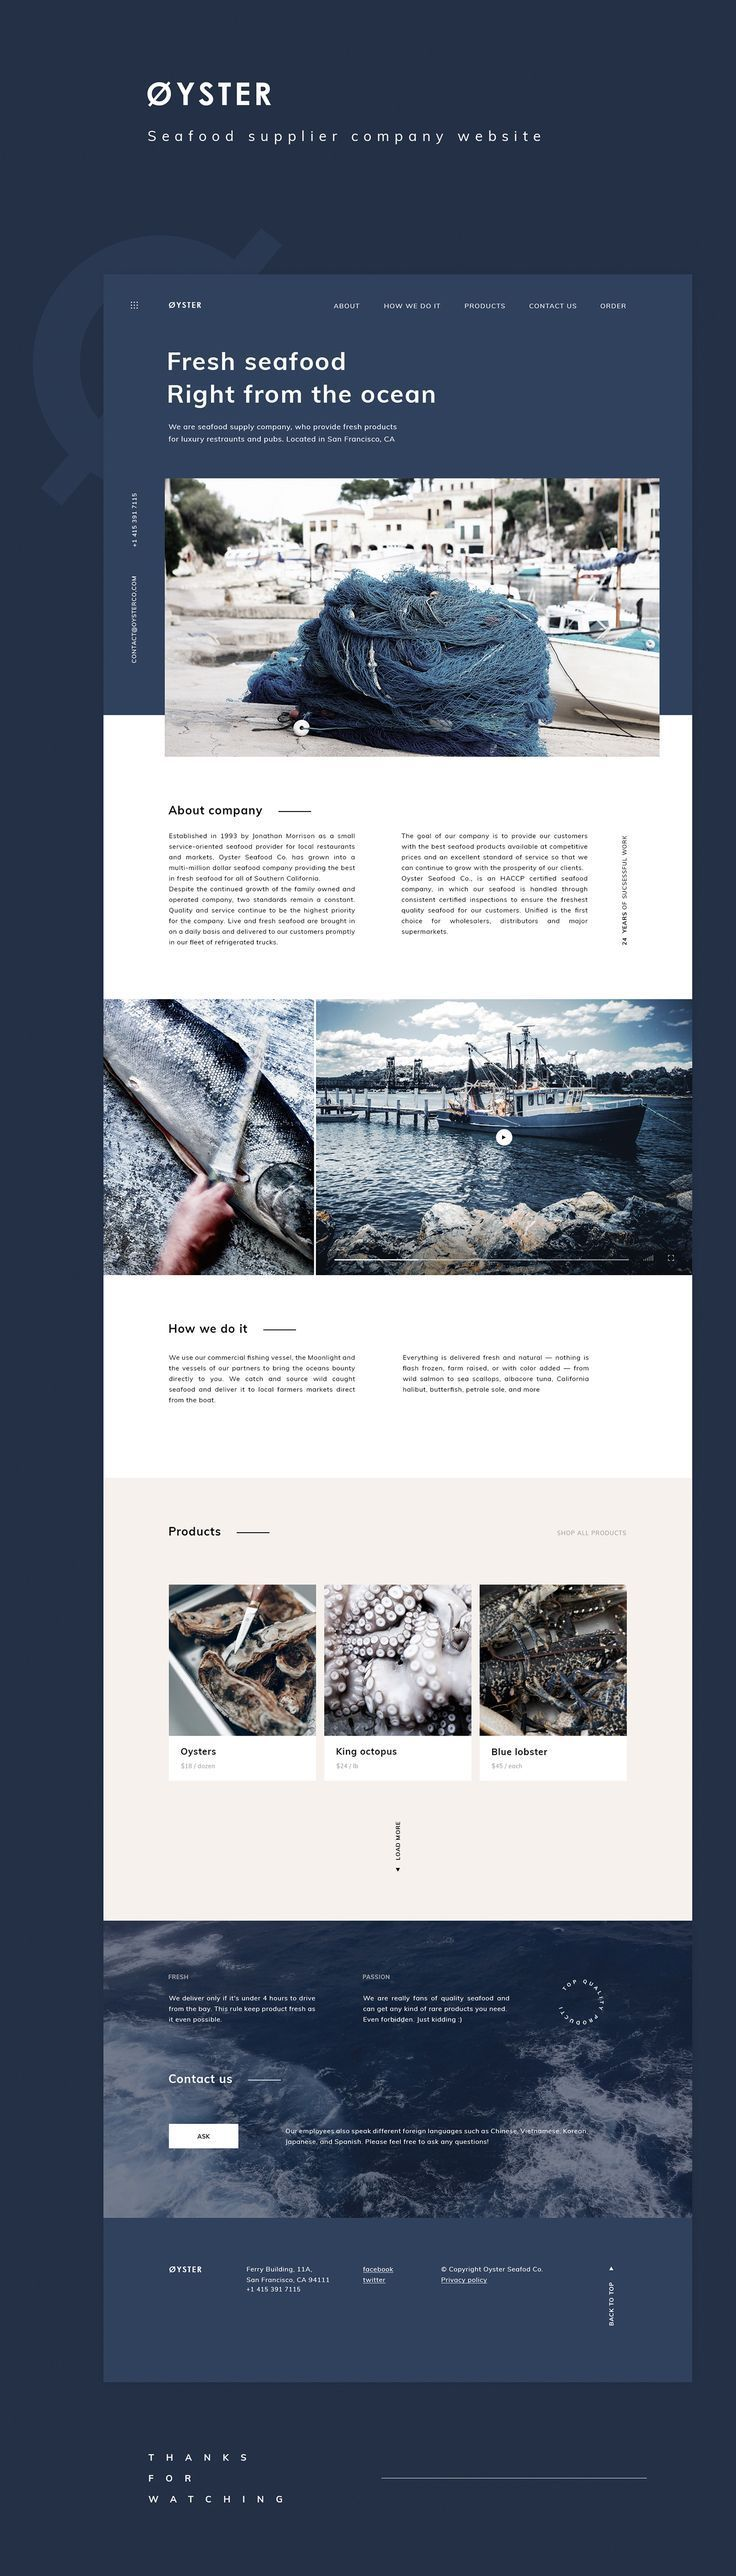 Øyster - Seafood supplier company website design